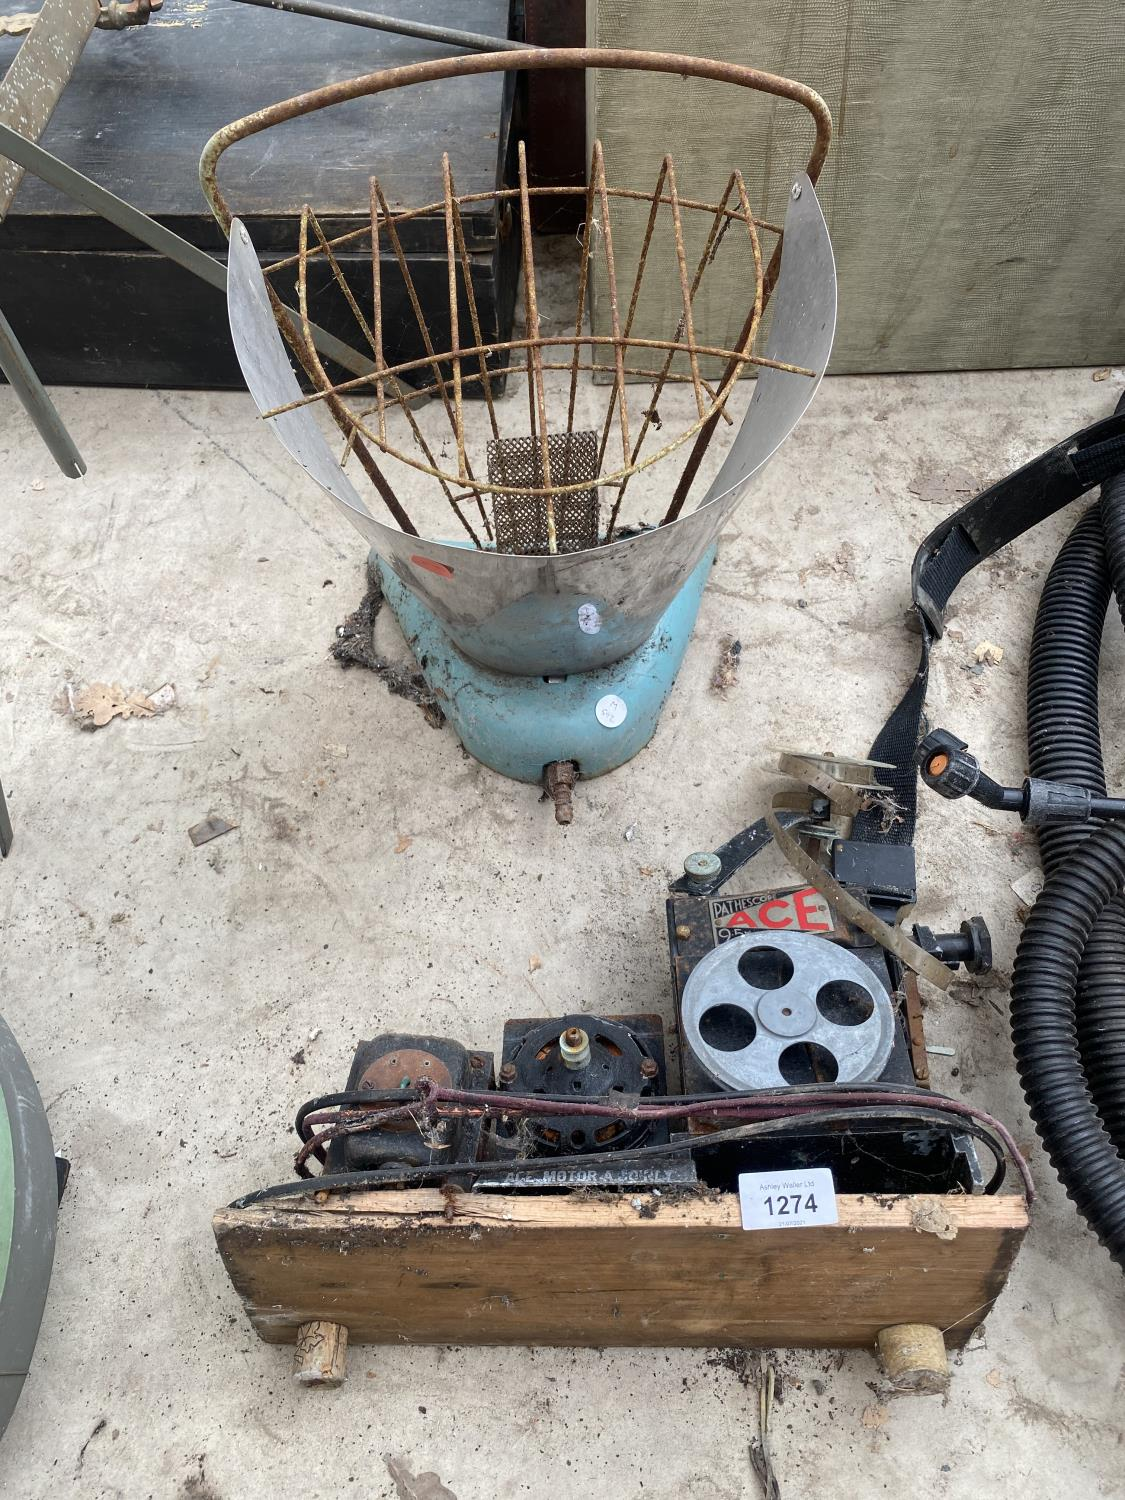 A VINTAGE MOTOR AND A VINTAGE PARAFIN HEATER